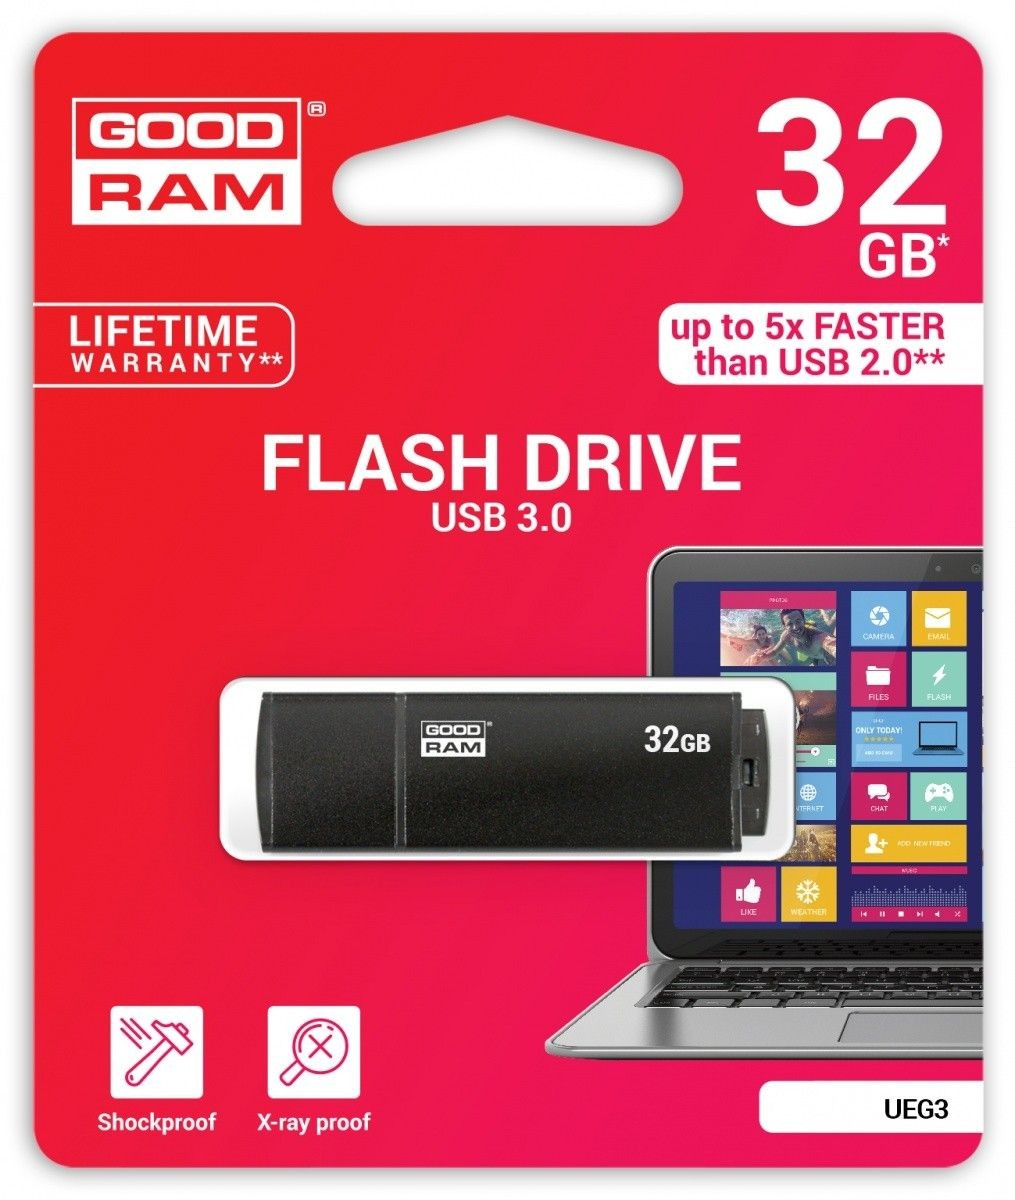 GoodRam EDGE 32GB USB 3.0 BLACK